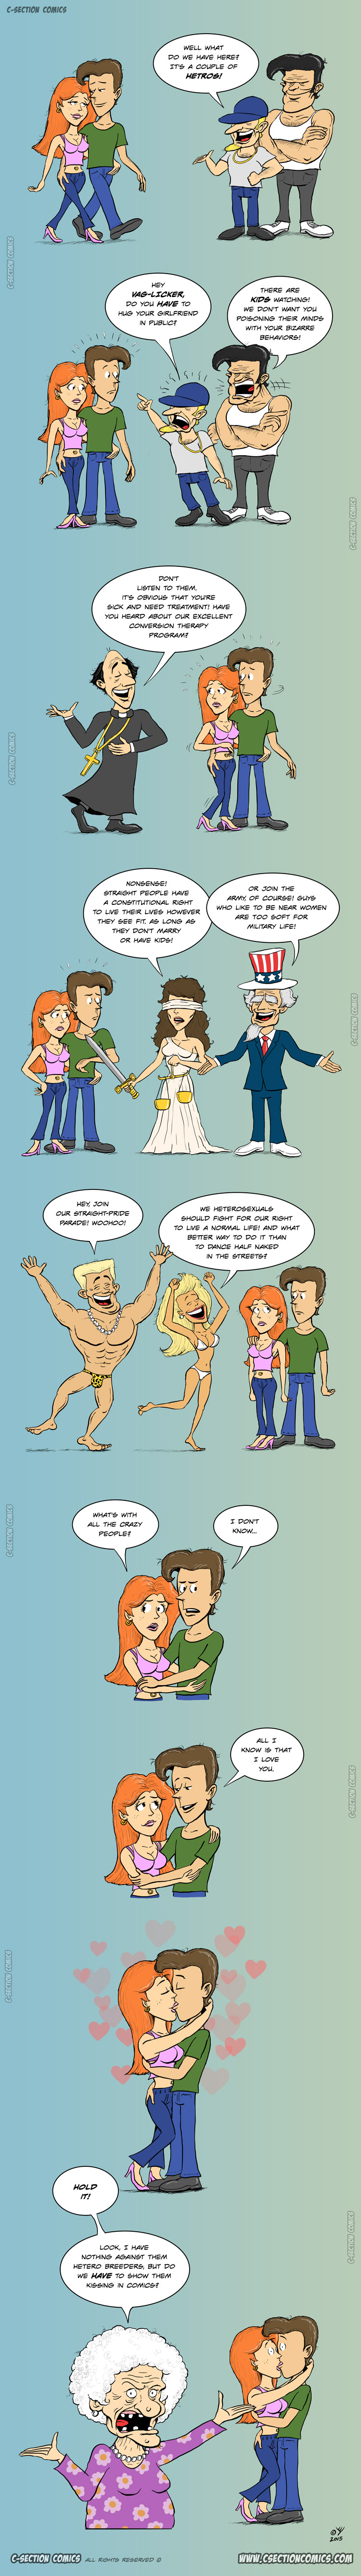 Hetros - a gay rights cartoon by C-Section Comics